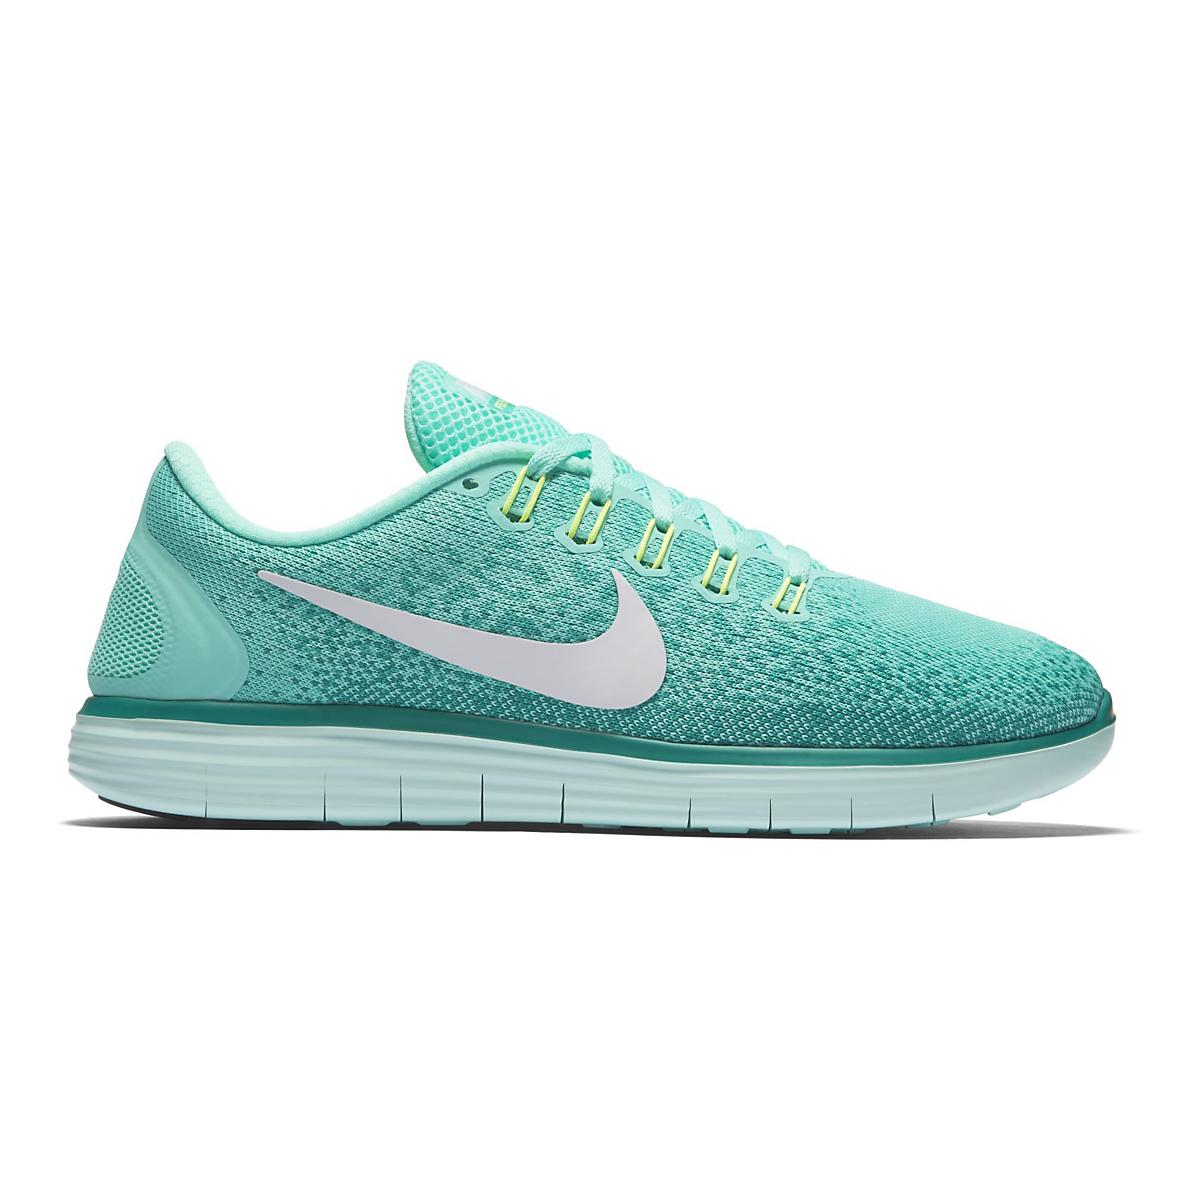 on sale 029d0 8101b Womens Nike Free RN Distance Running Shoe at Road Runner Spo